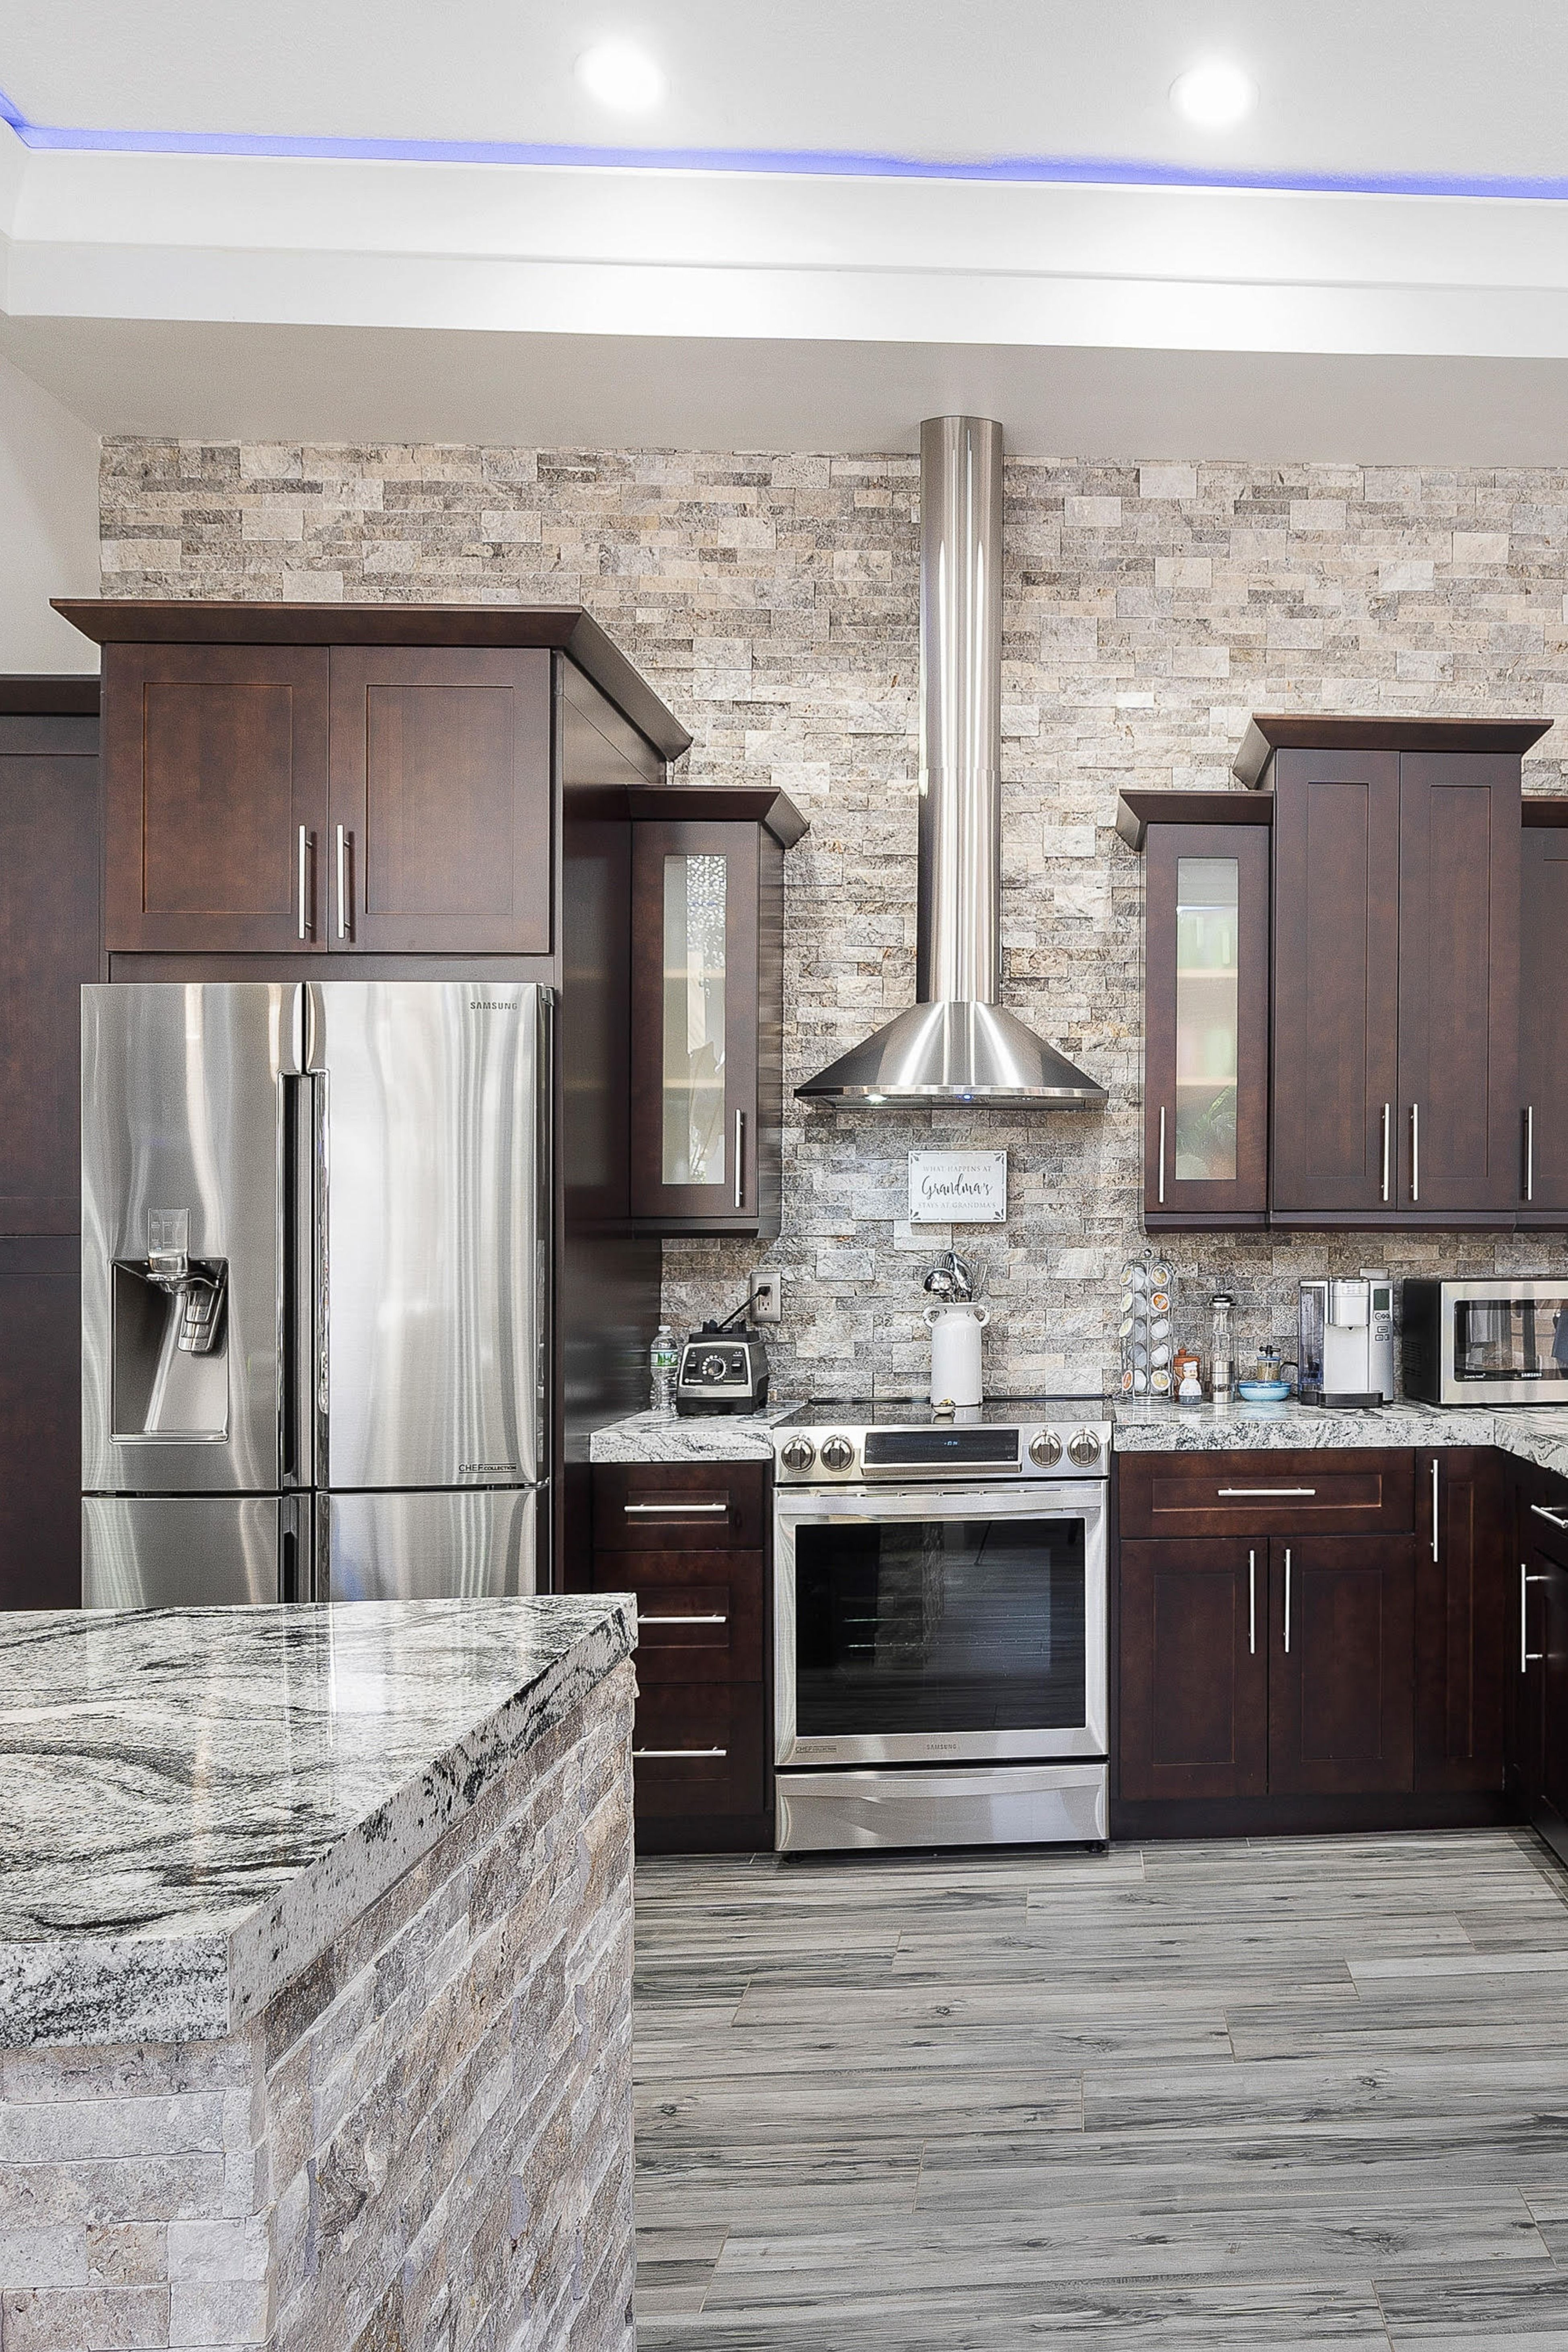 How Long Does It Take To Remodel A Kitchen Interior Design Kitchen Home Decor Kitchen Design